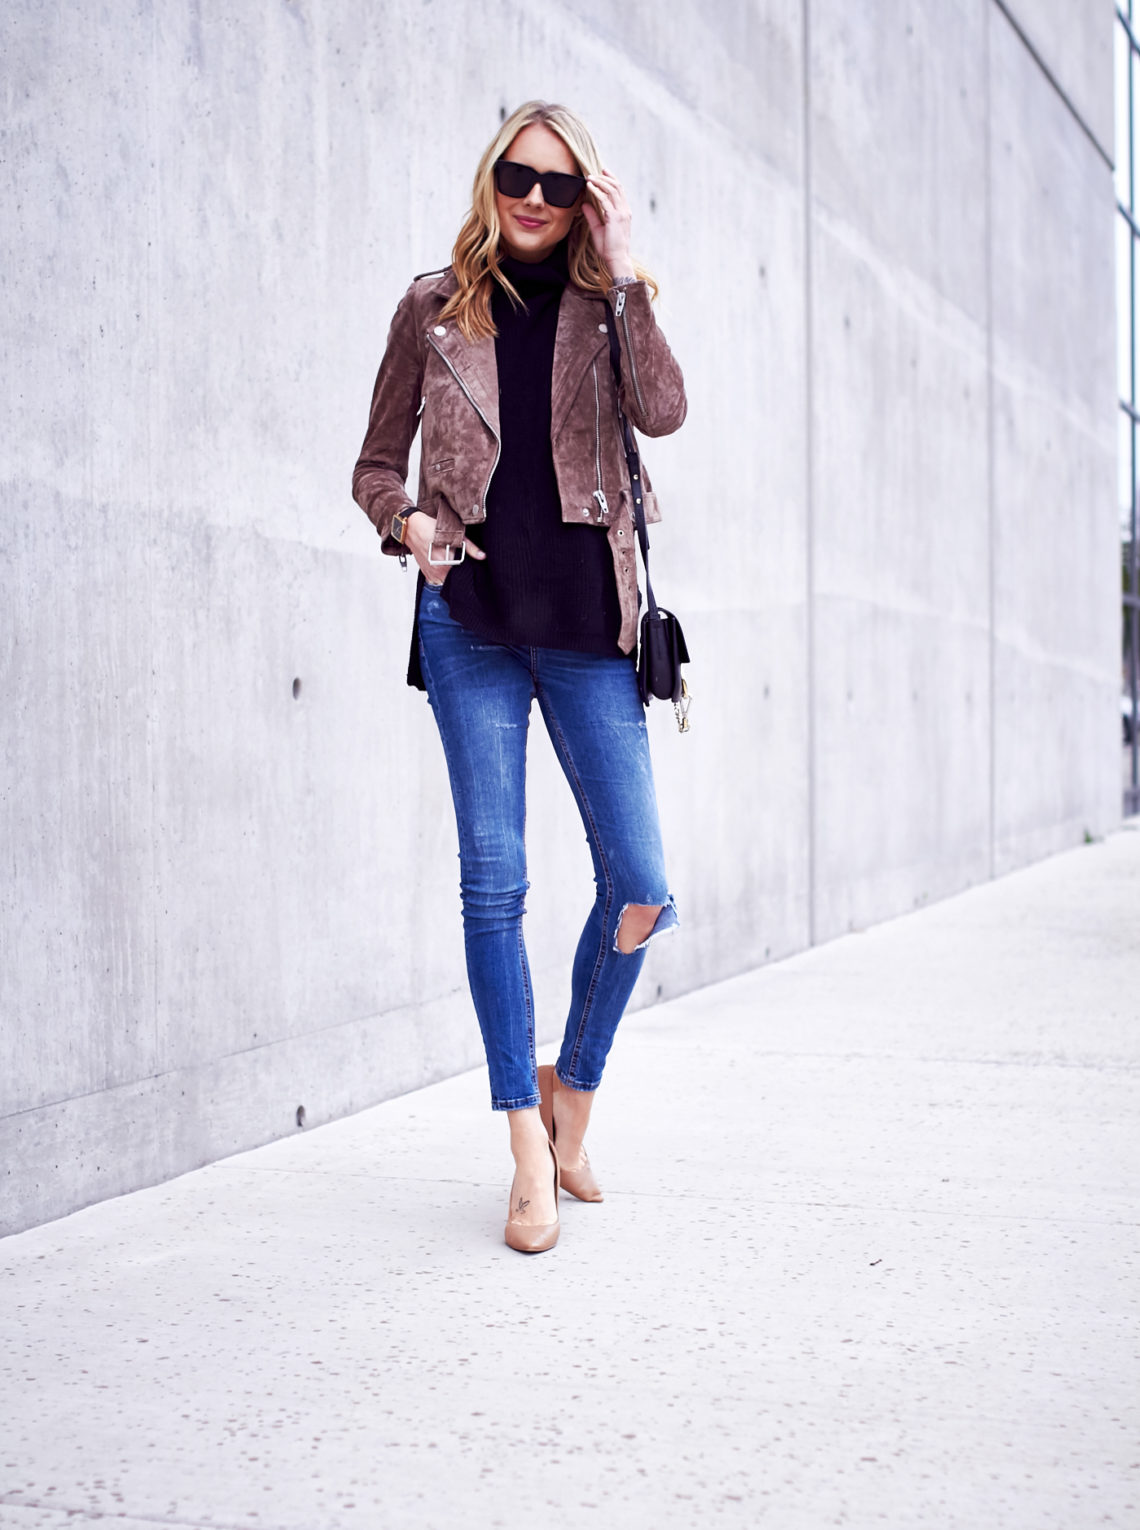 fashion-jackson-blakc-sunglasses-blanknyc-morning-suede-moto-jacket-black-sweater-ripped-denim-jeans-nude-pumps